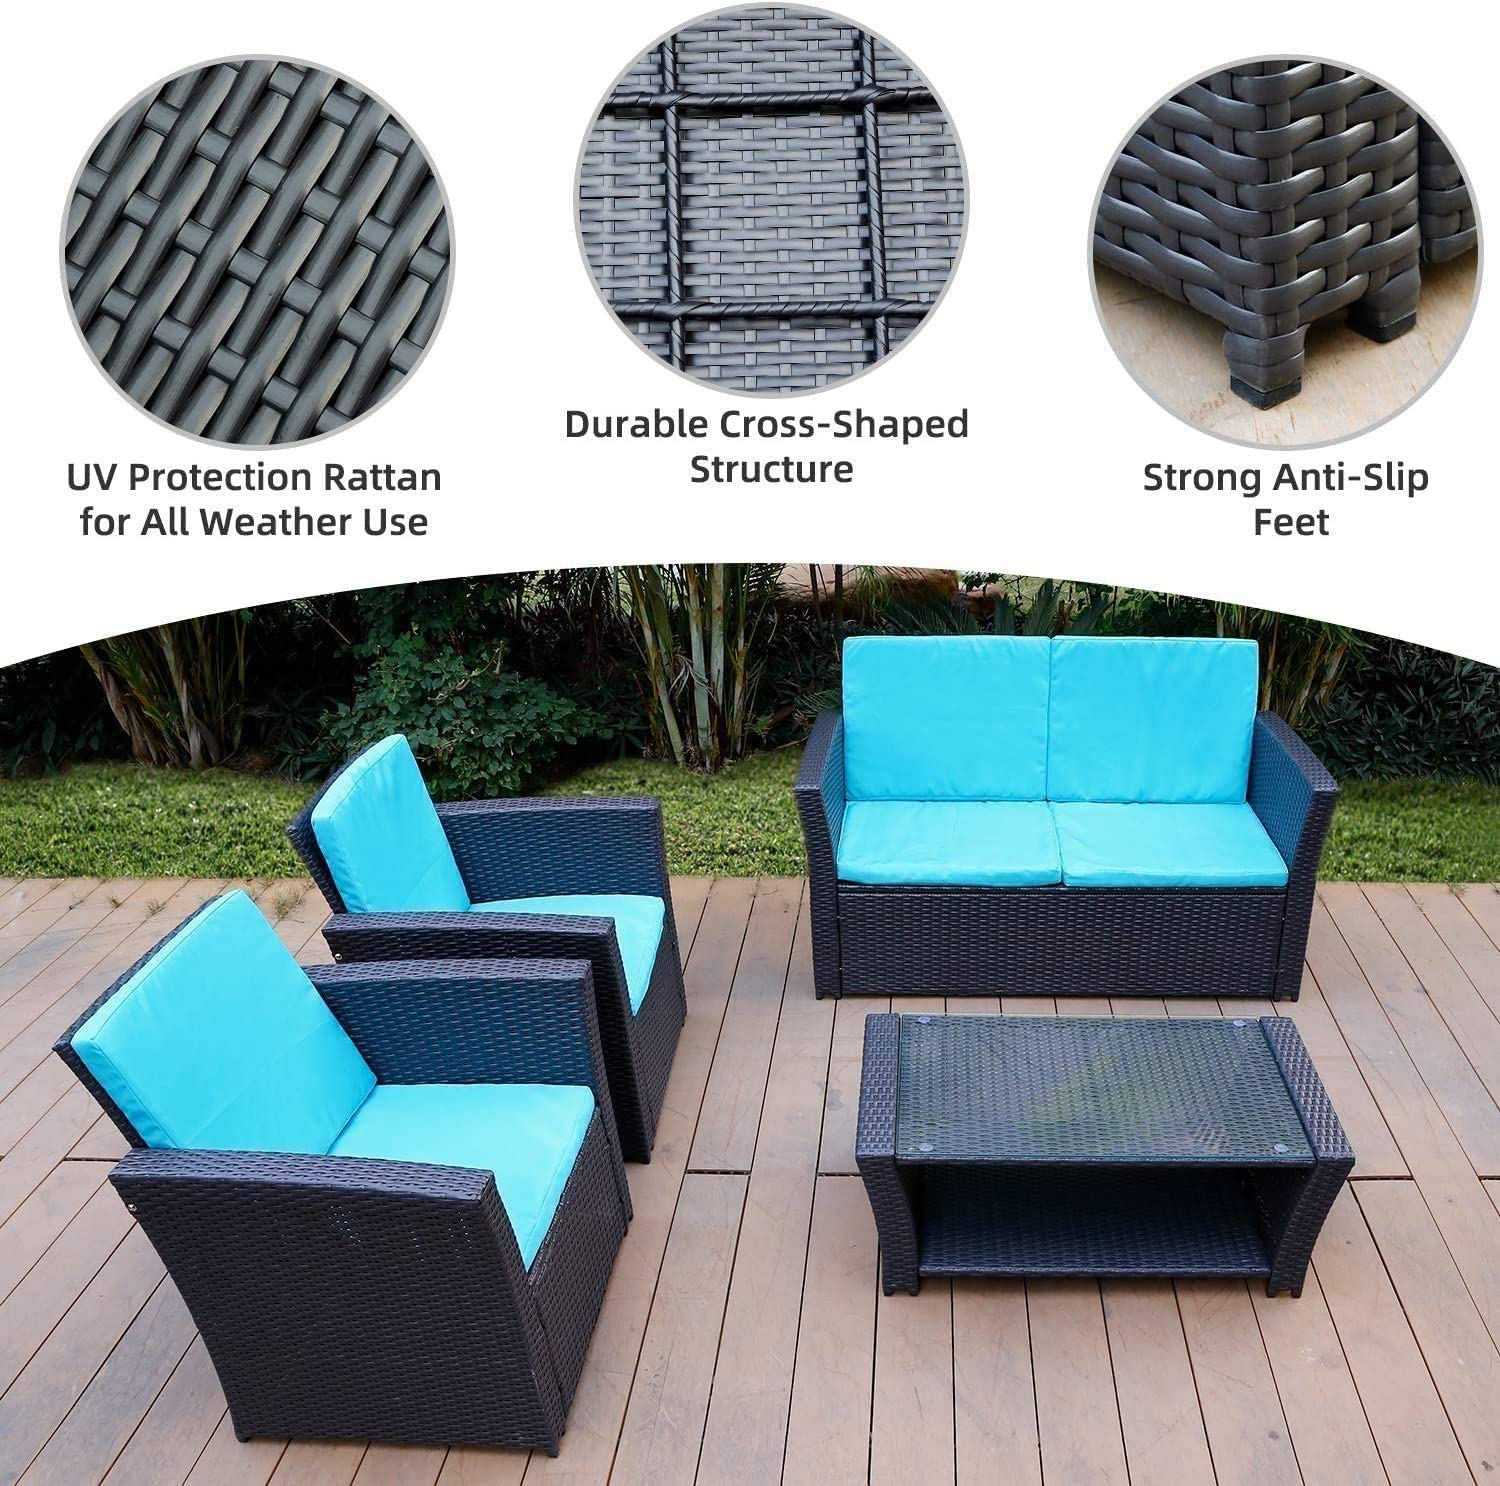 Washable Couch Cushions Blue All-Weather Rattan Sectional Sofa with Table TUSY 5pcs Patio Outdoor Furniture Sets High Back Black Rattan